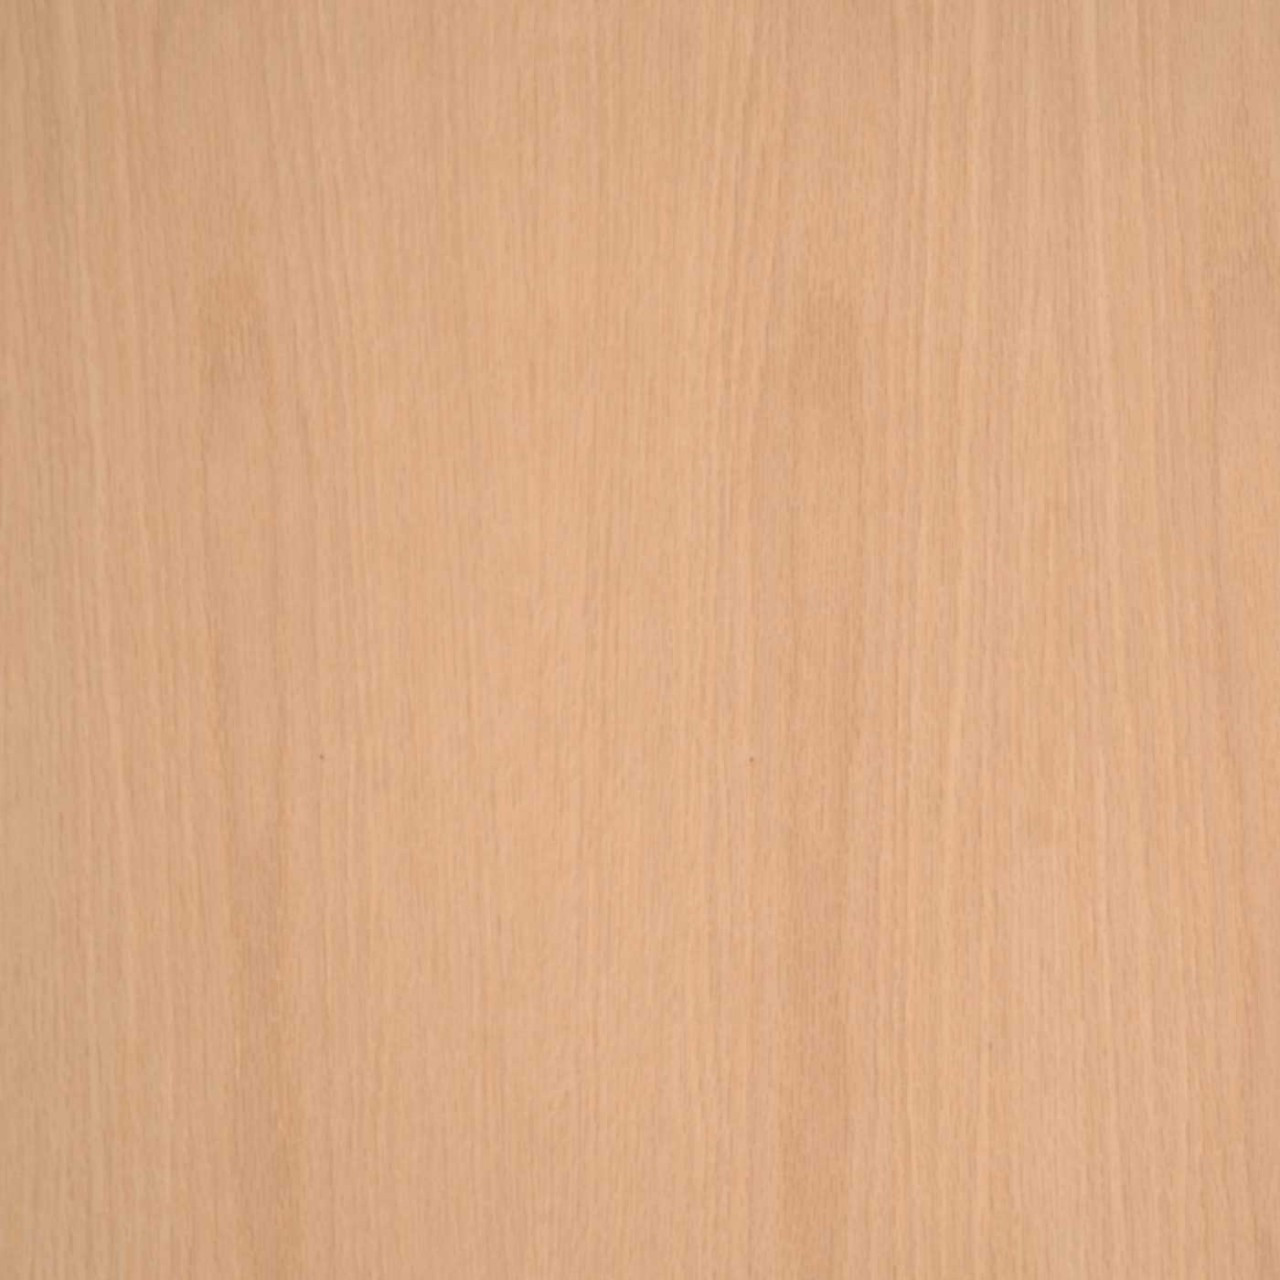 Oak Wall Panelling Wood Paneling Unfinished Red Oak Wall Paneling Library